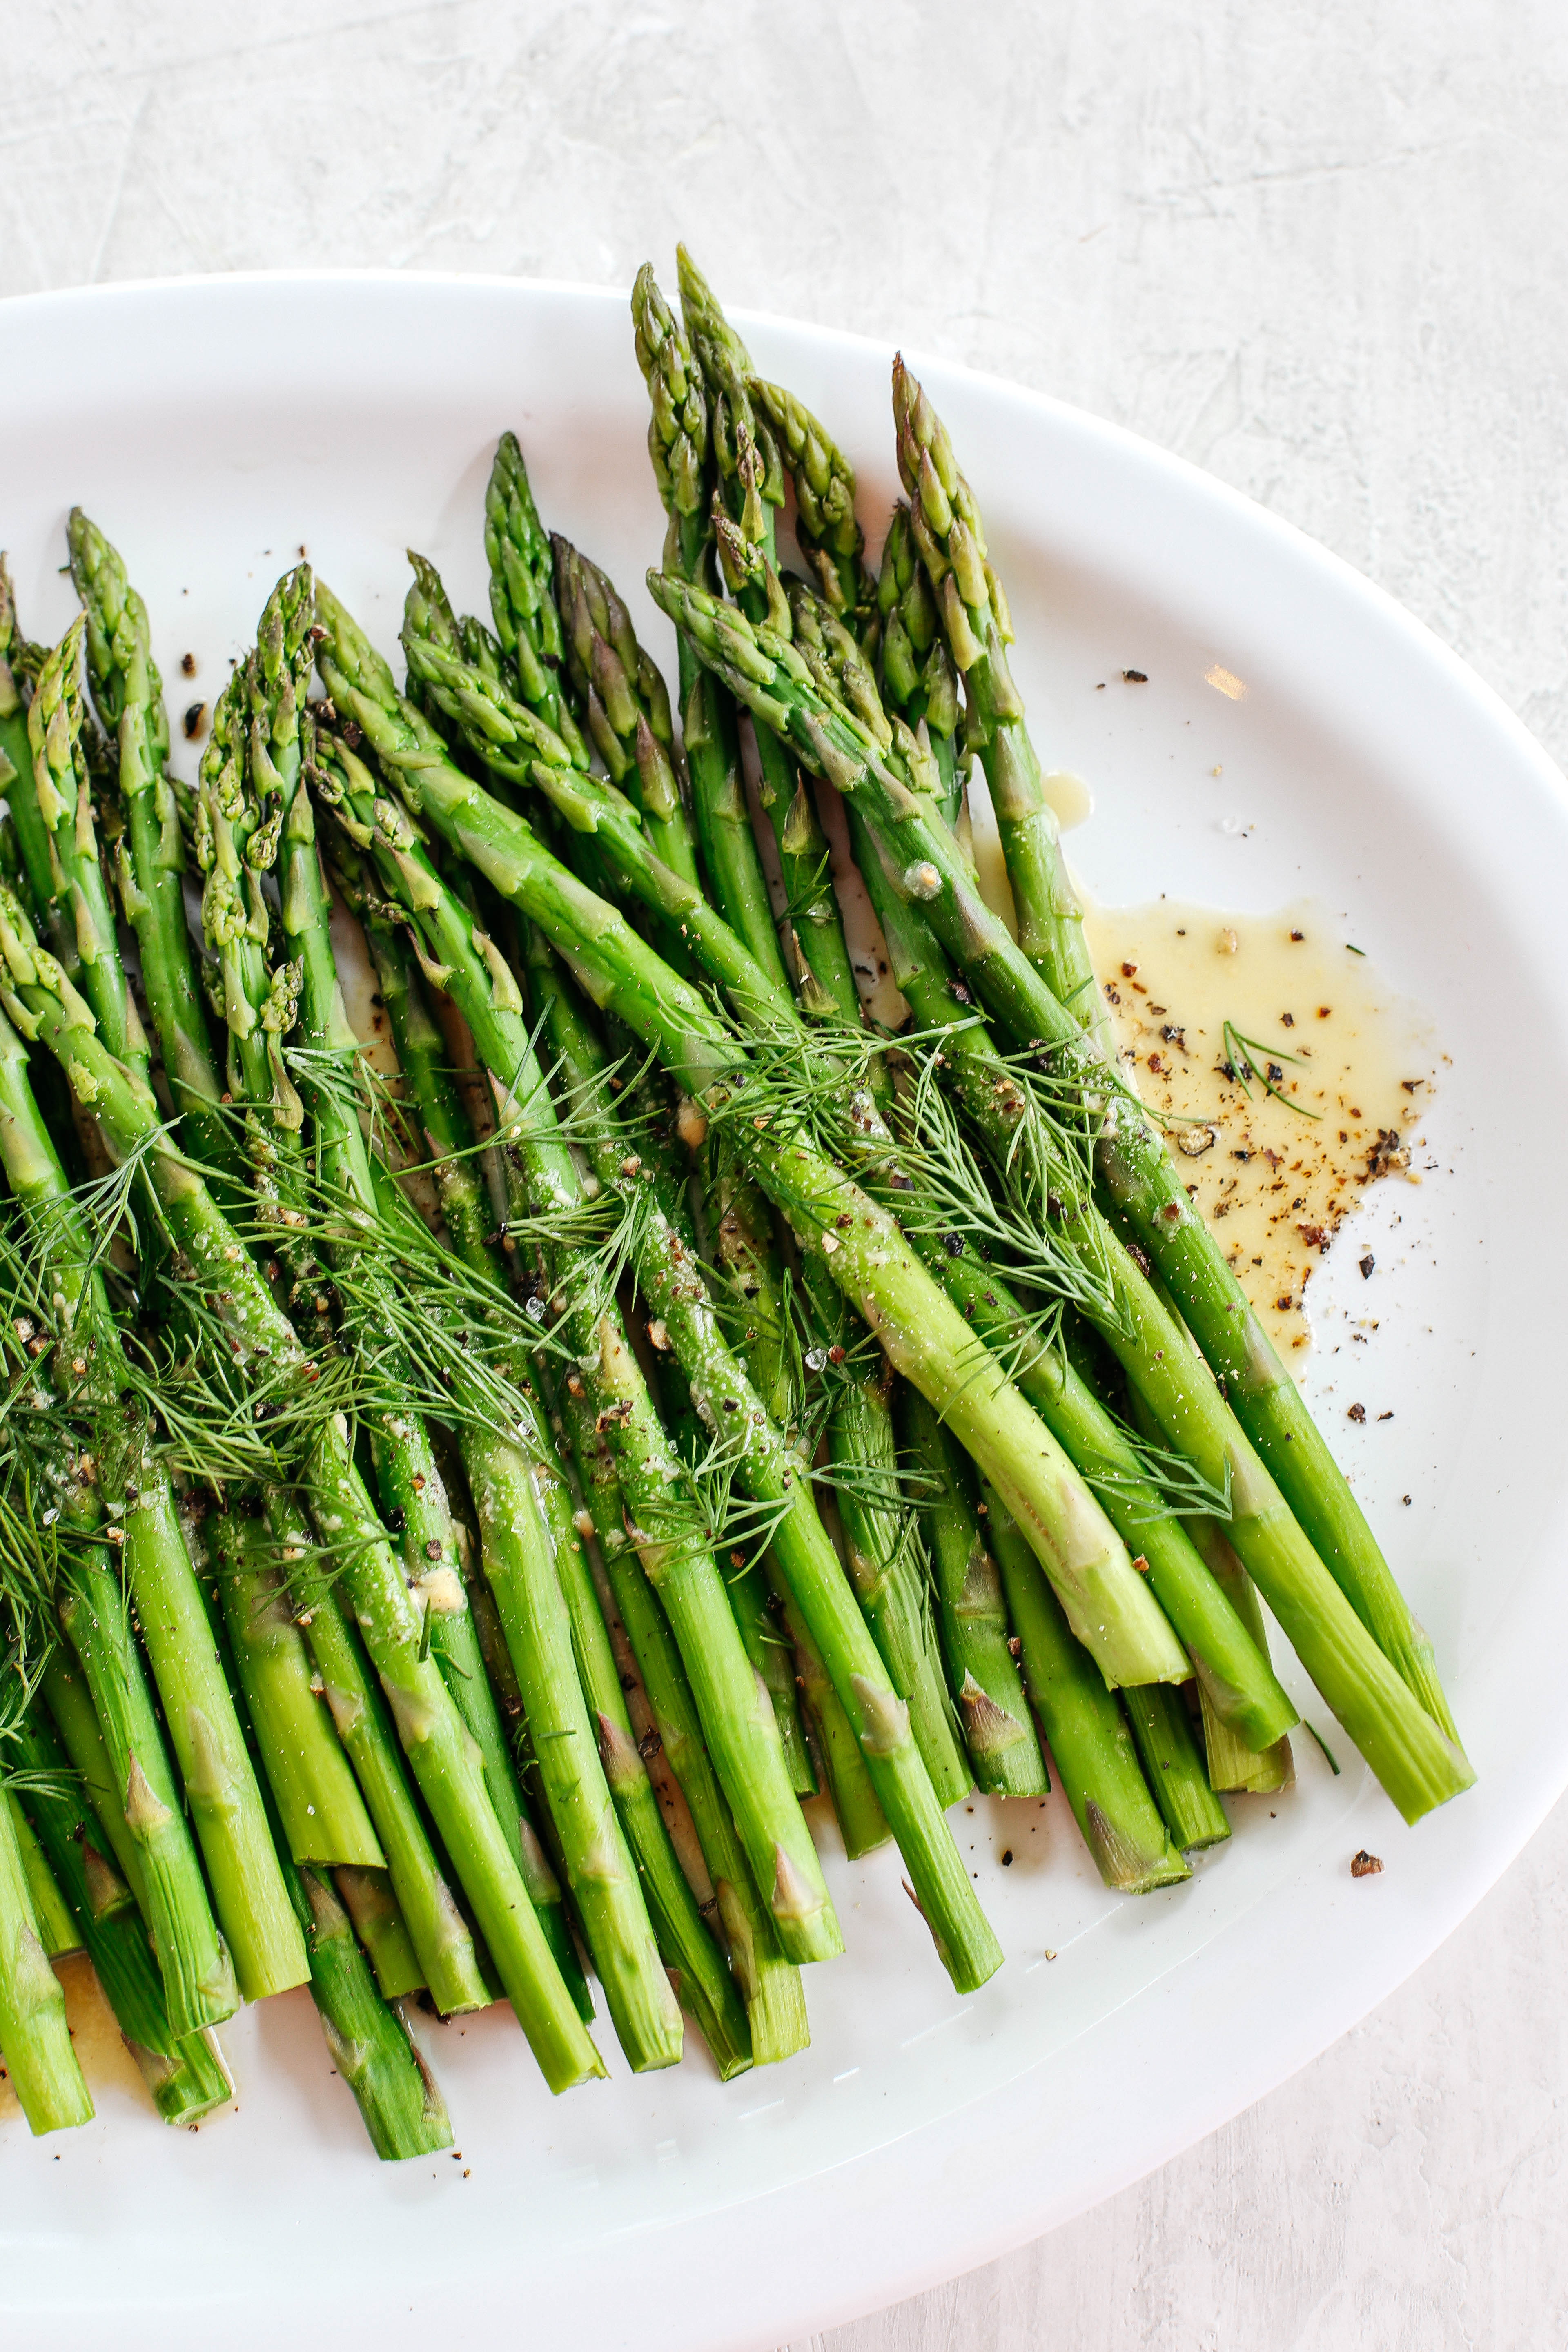 Baked Asparagus with delicious Mustard Dill Sauce makes the perfect healthy side dish for any meal with just a few simple ingredients!